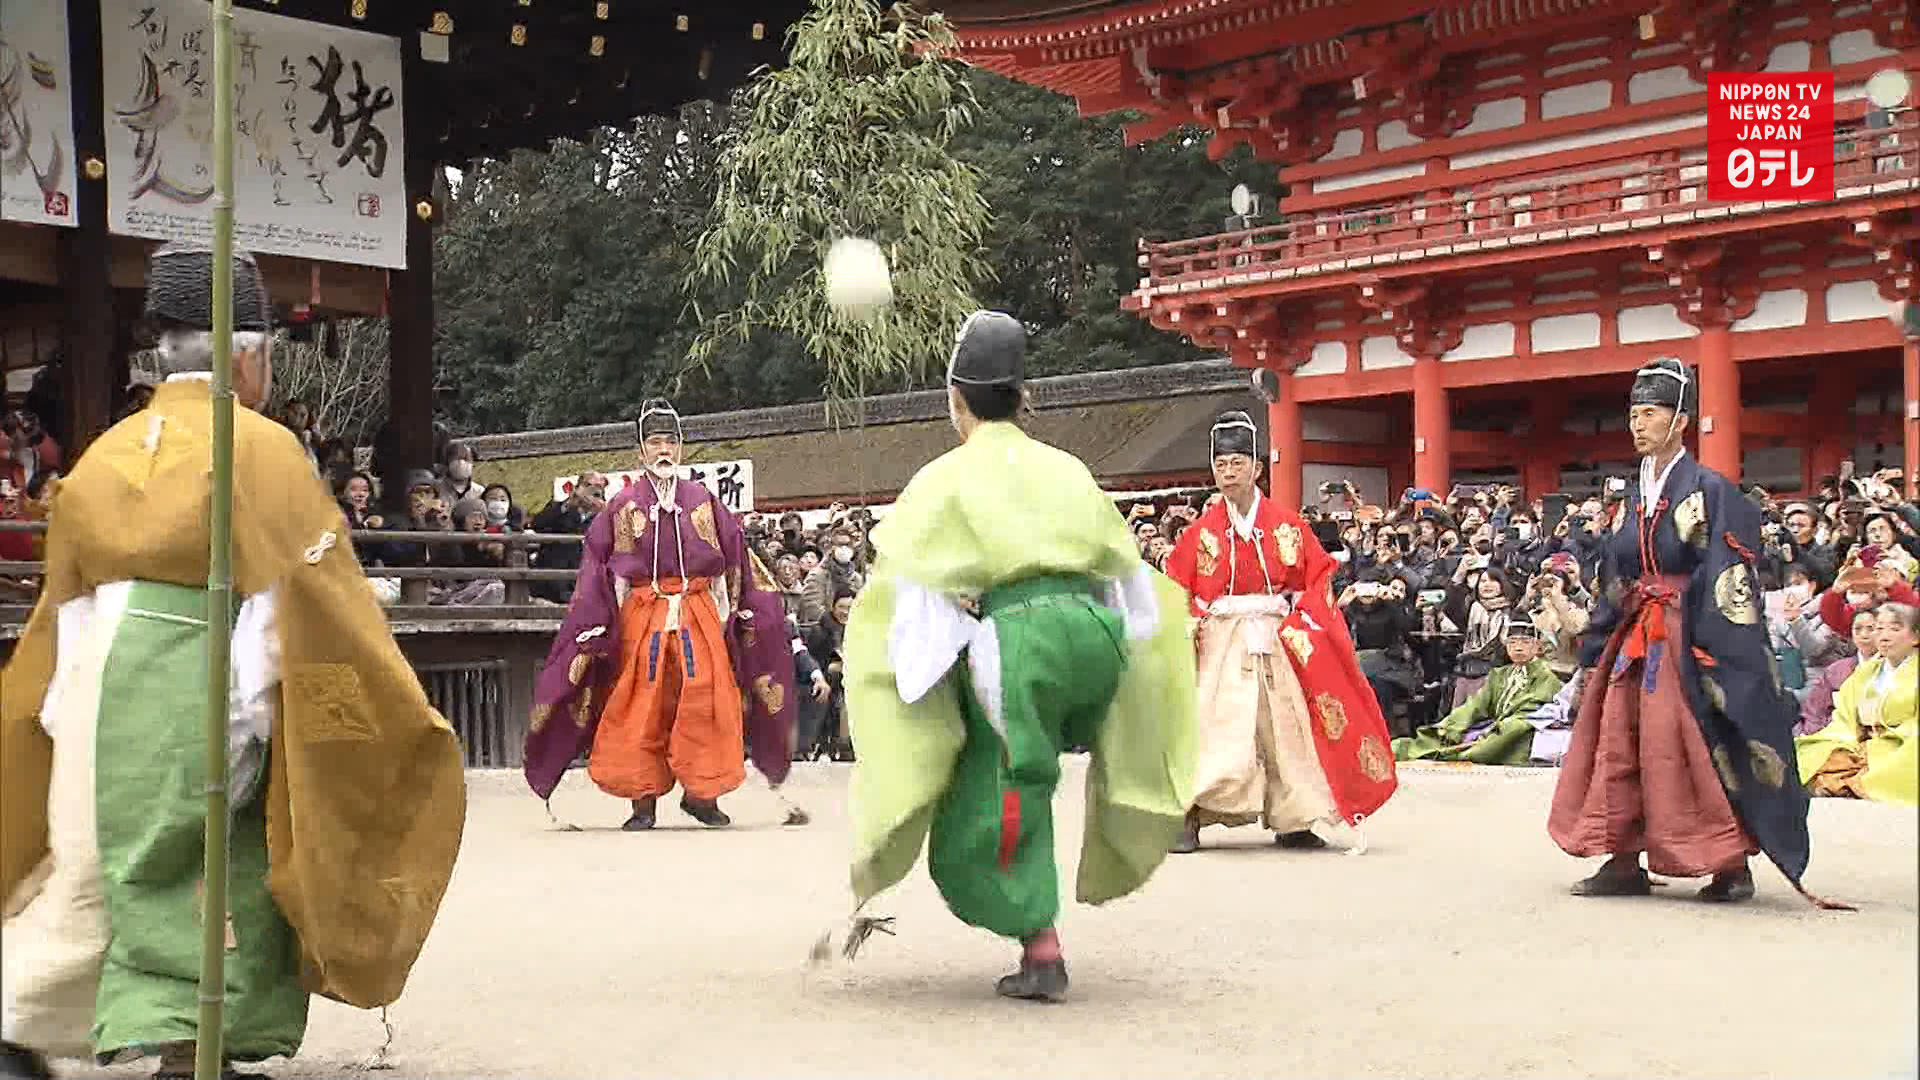 Japan's ancient ball game